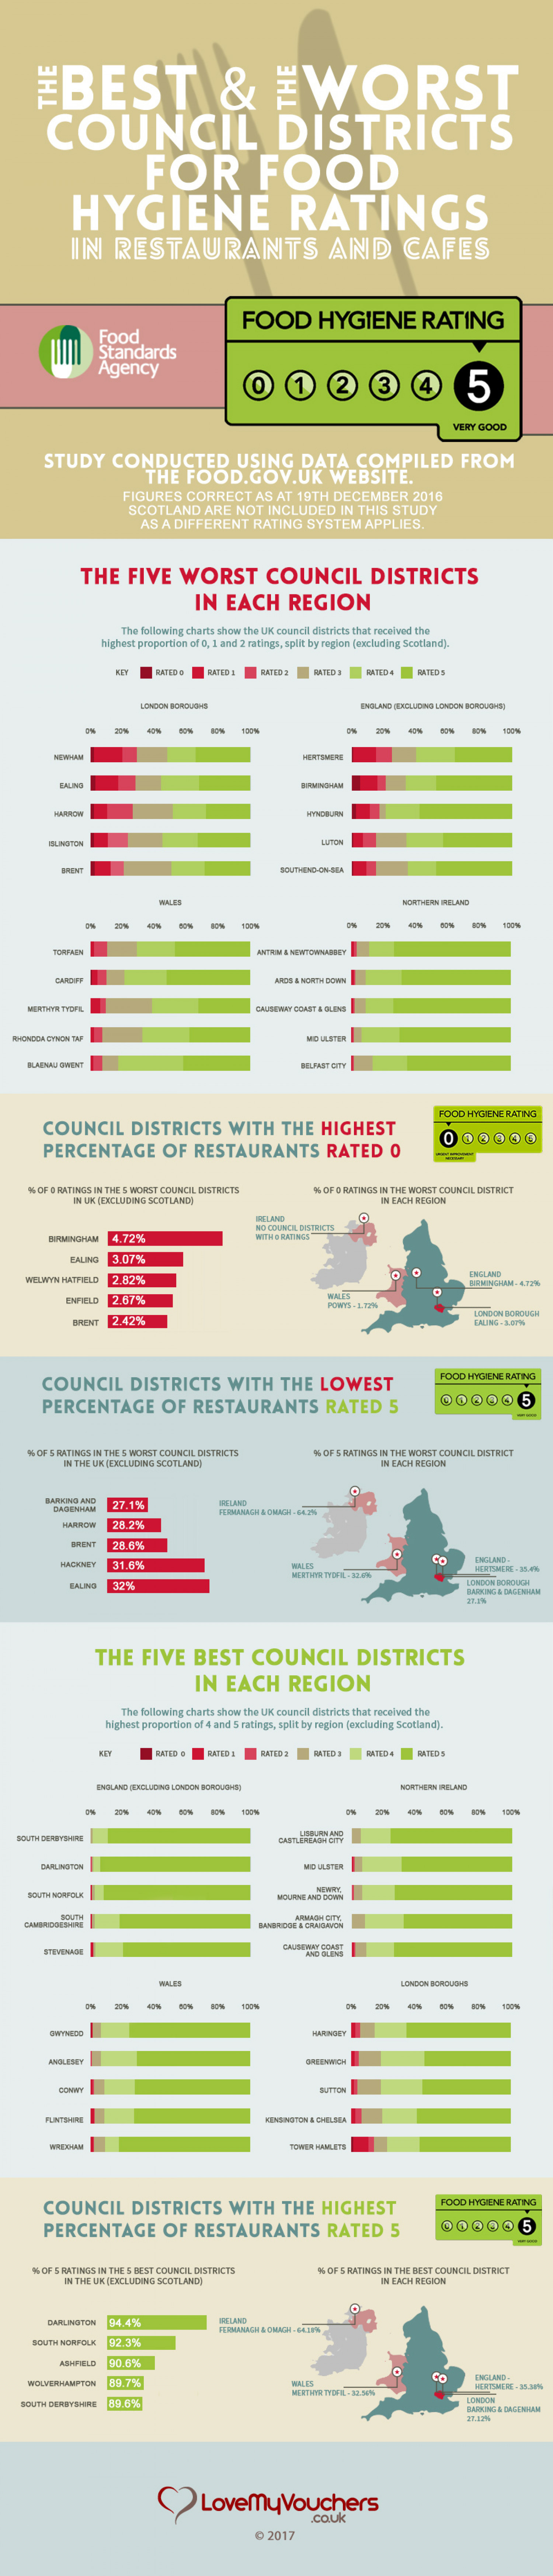 The Best and Worst Council District for Food Hygiene Ratings Infographic